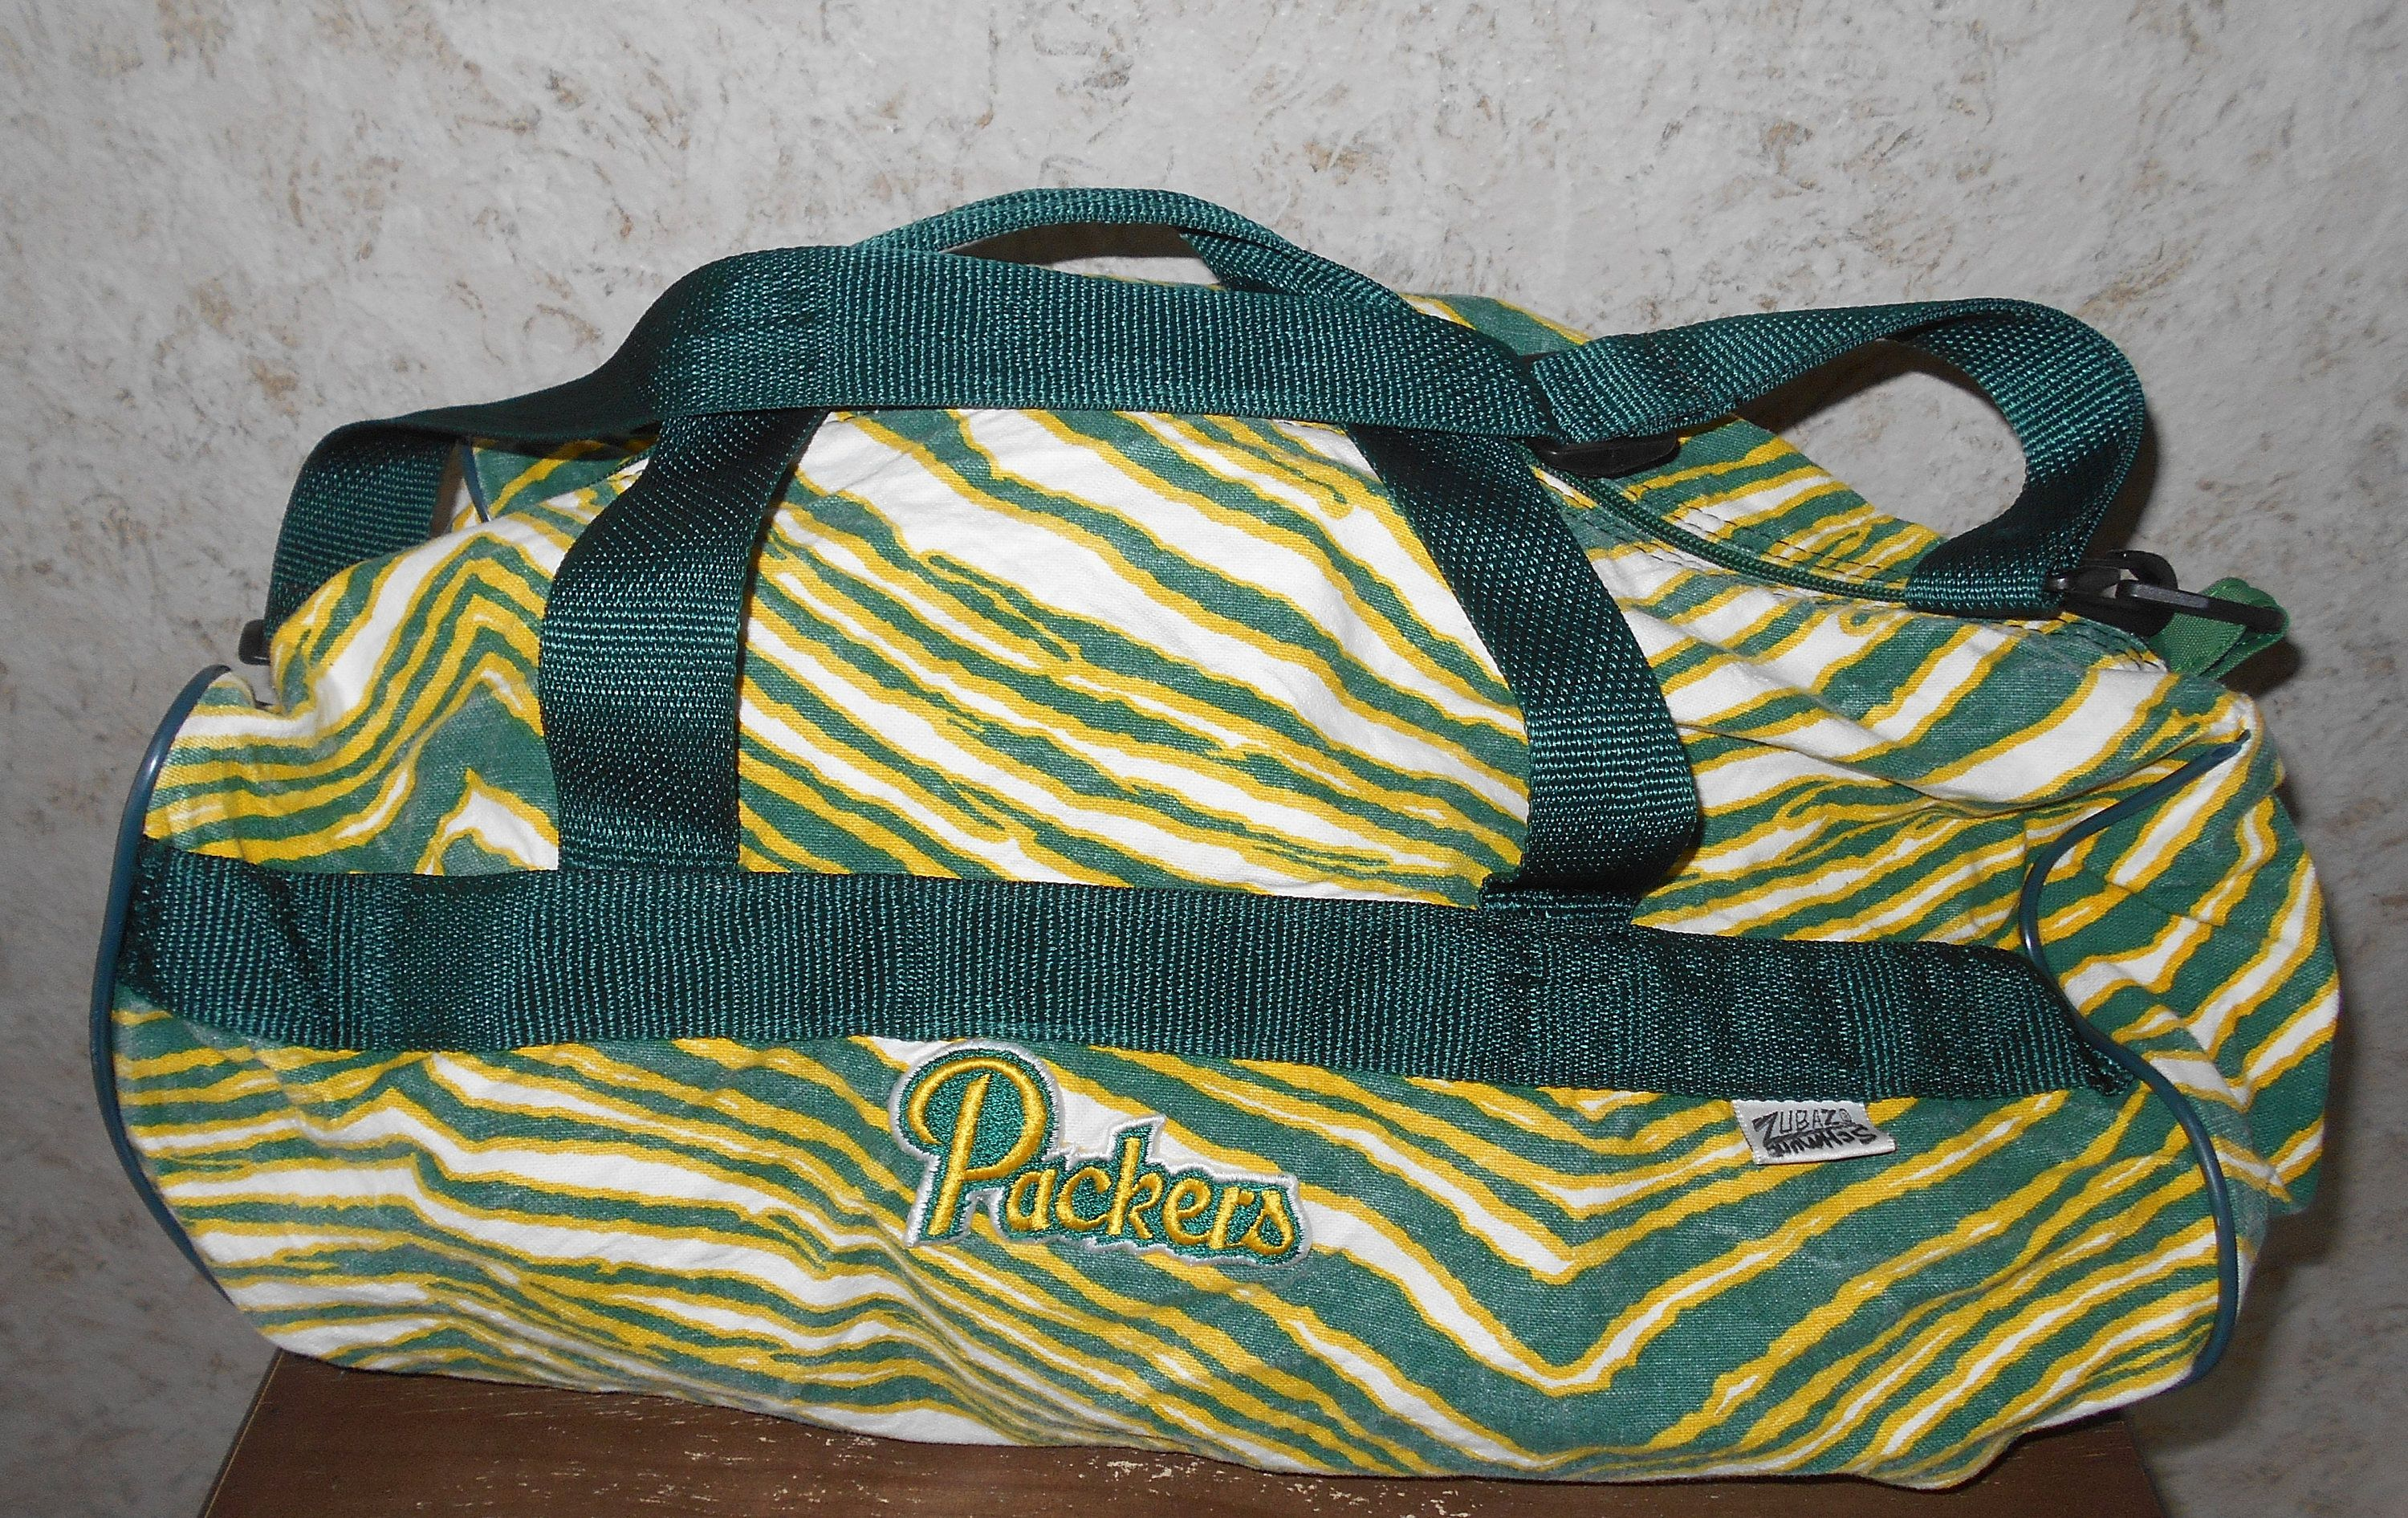 Vintage 80s 90s Zubaz Green Bay Packers Duffle Gym Bag Tote Green Gold Zebra Print Hip Hop Retro Nfl Football Travel Luggage Ma Vintage Outfits Duffle Fun Bags